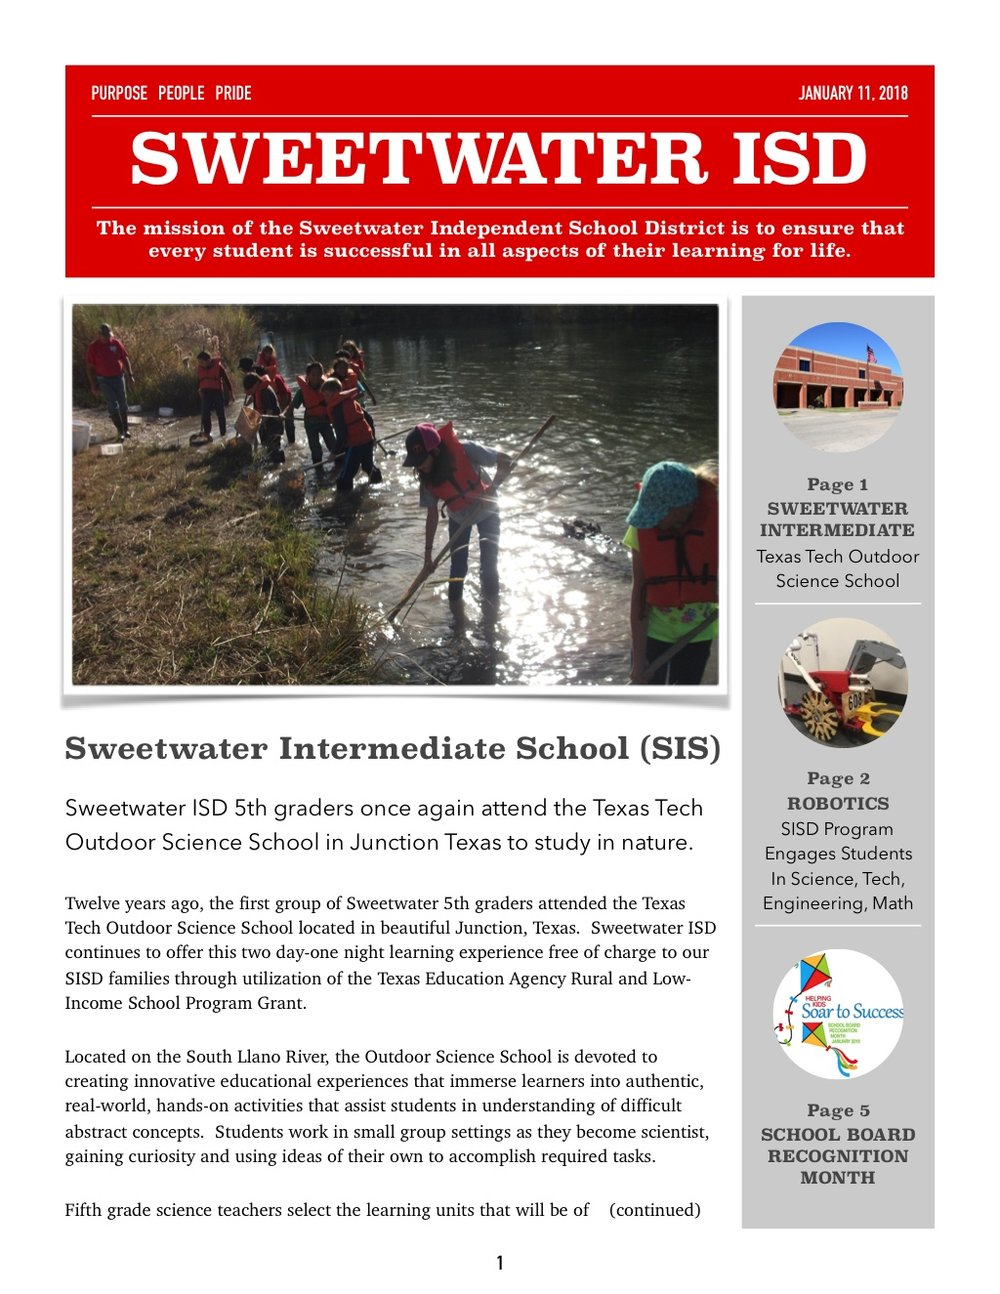 SISD Newsletter January 2018 copy-1.jpg